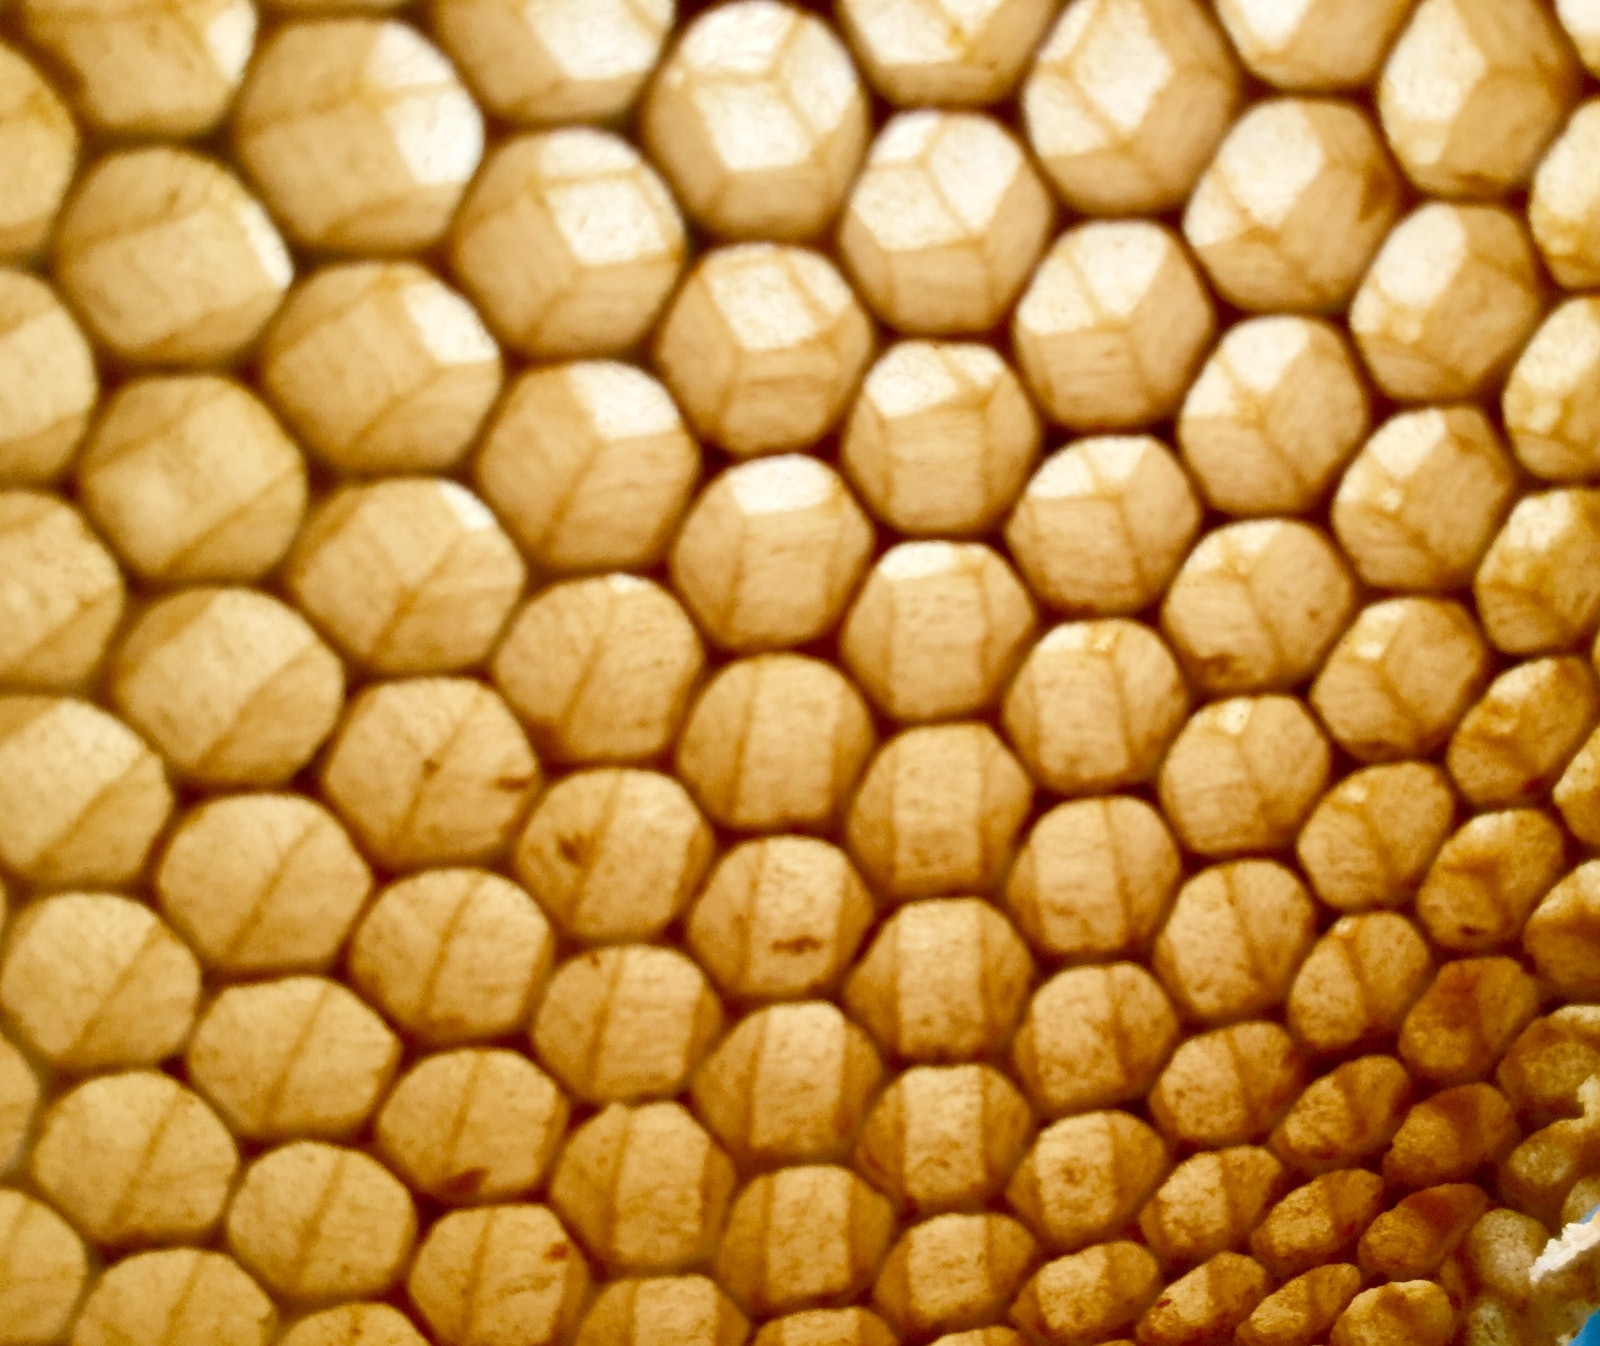 What 34.4º products contains beeswax and honey? What are their benefits?